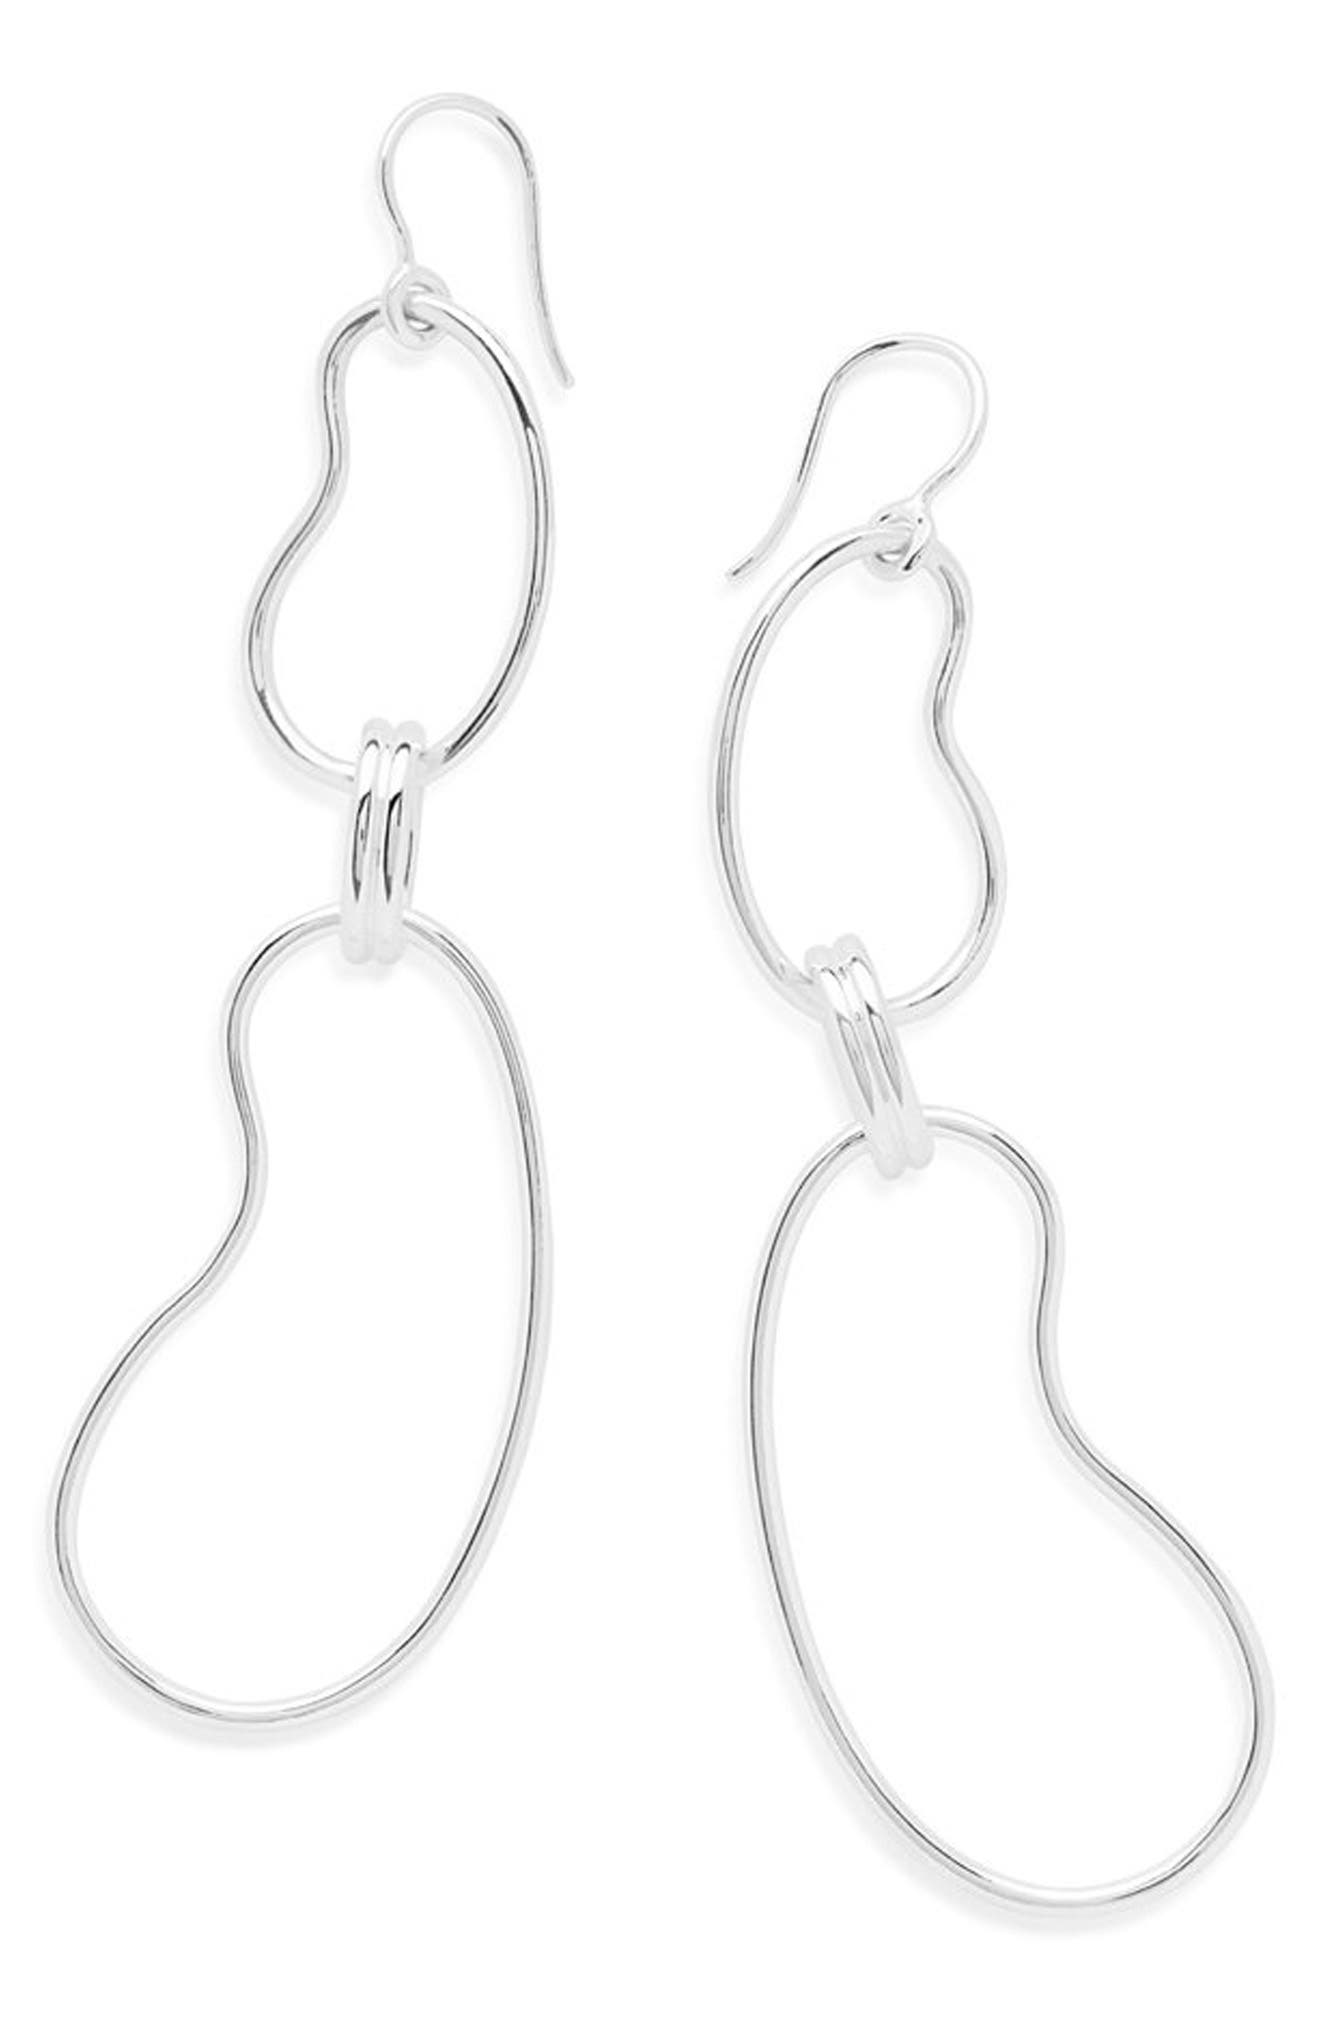 Classico Kidney Oval Link Earrings,                         Main,                         color, Silver